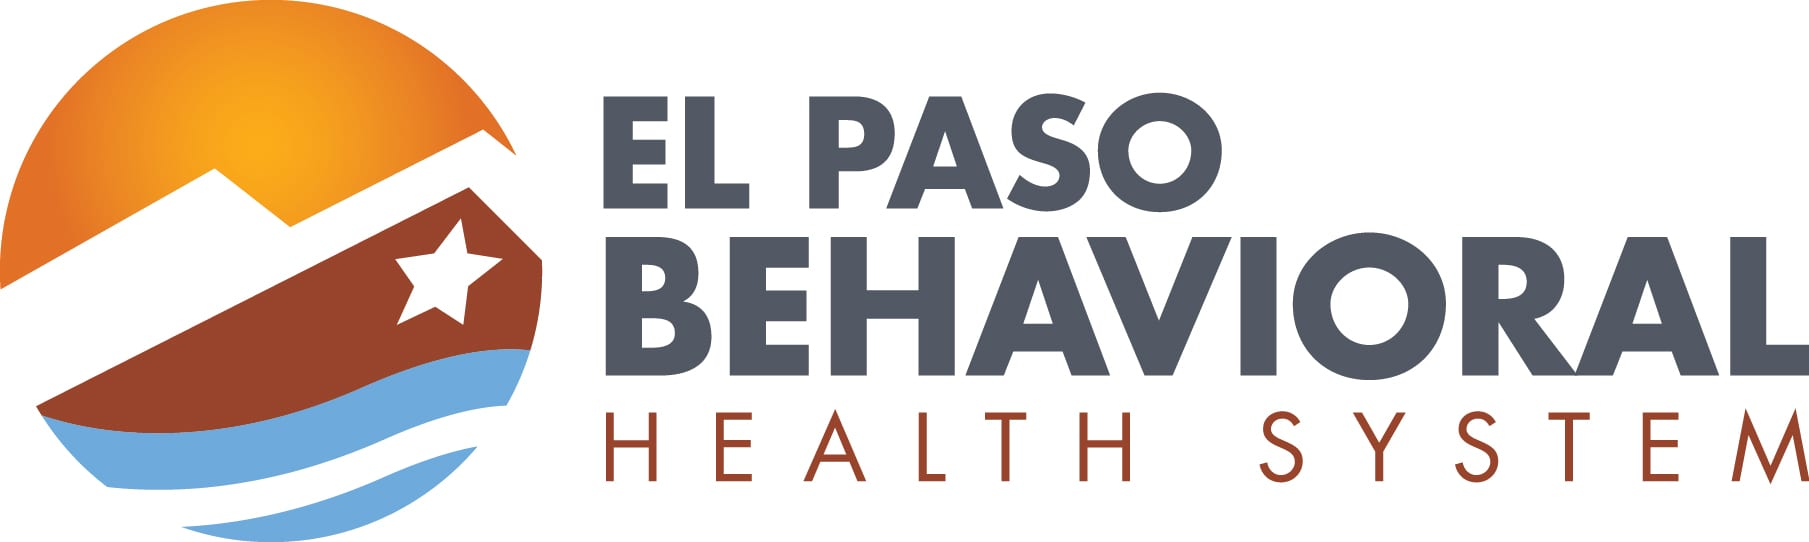 El Paso Behavioral Health System